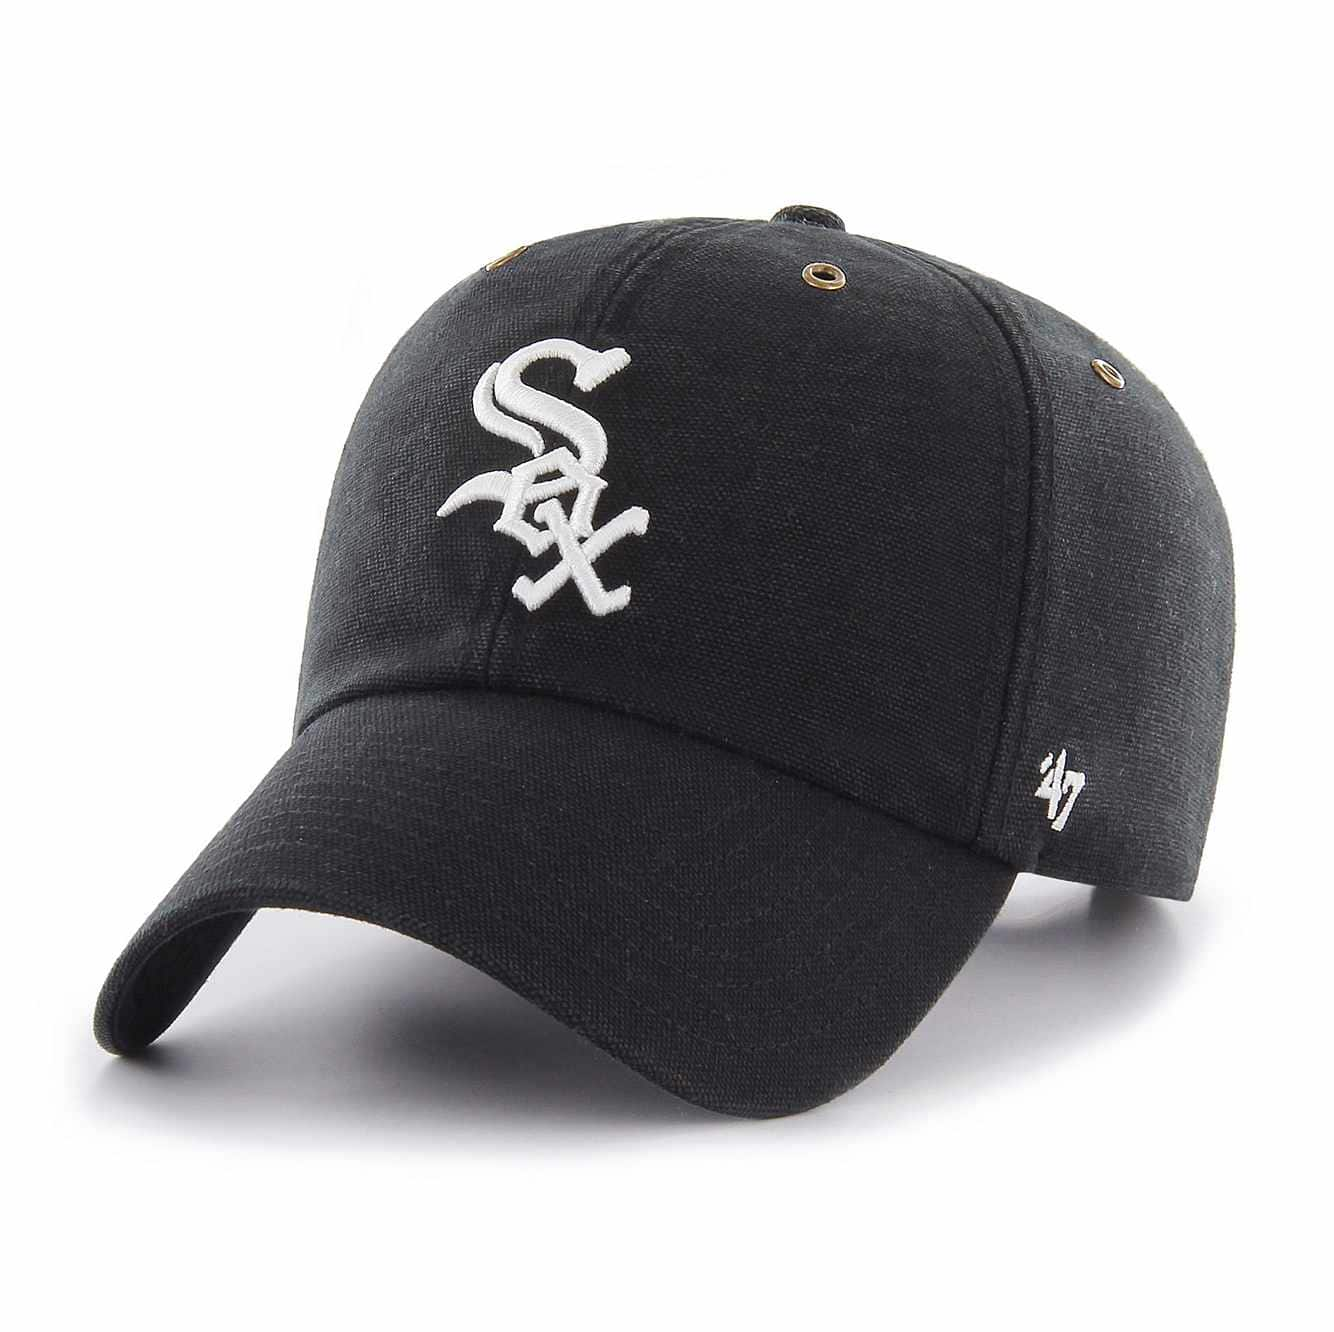 Picture of Chicago White Sox Carhartt x '47 Clean Up in Black